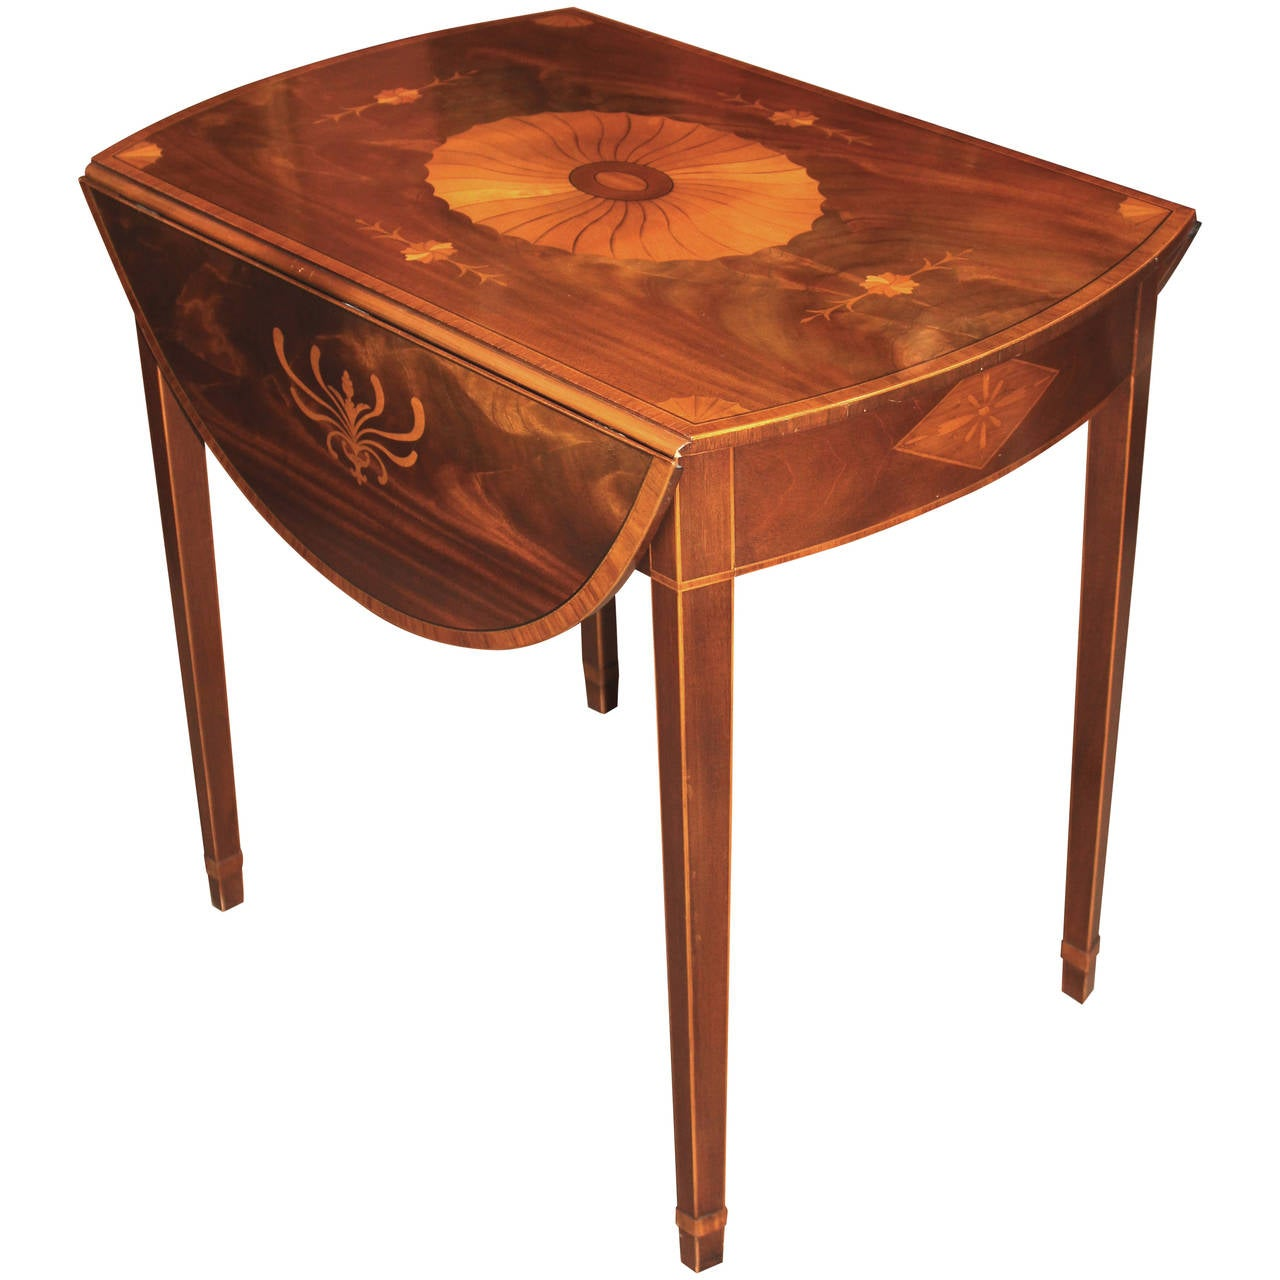 Baker furniture inlaid pembroke table at 1stdibs for Baker furniture